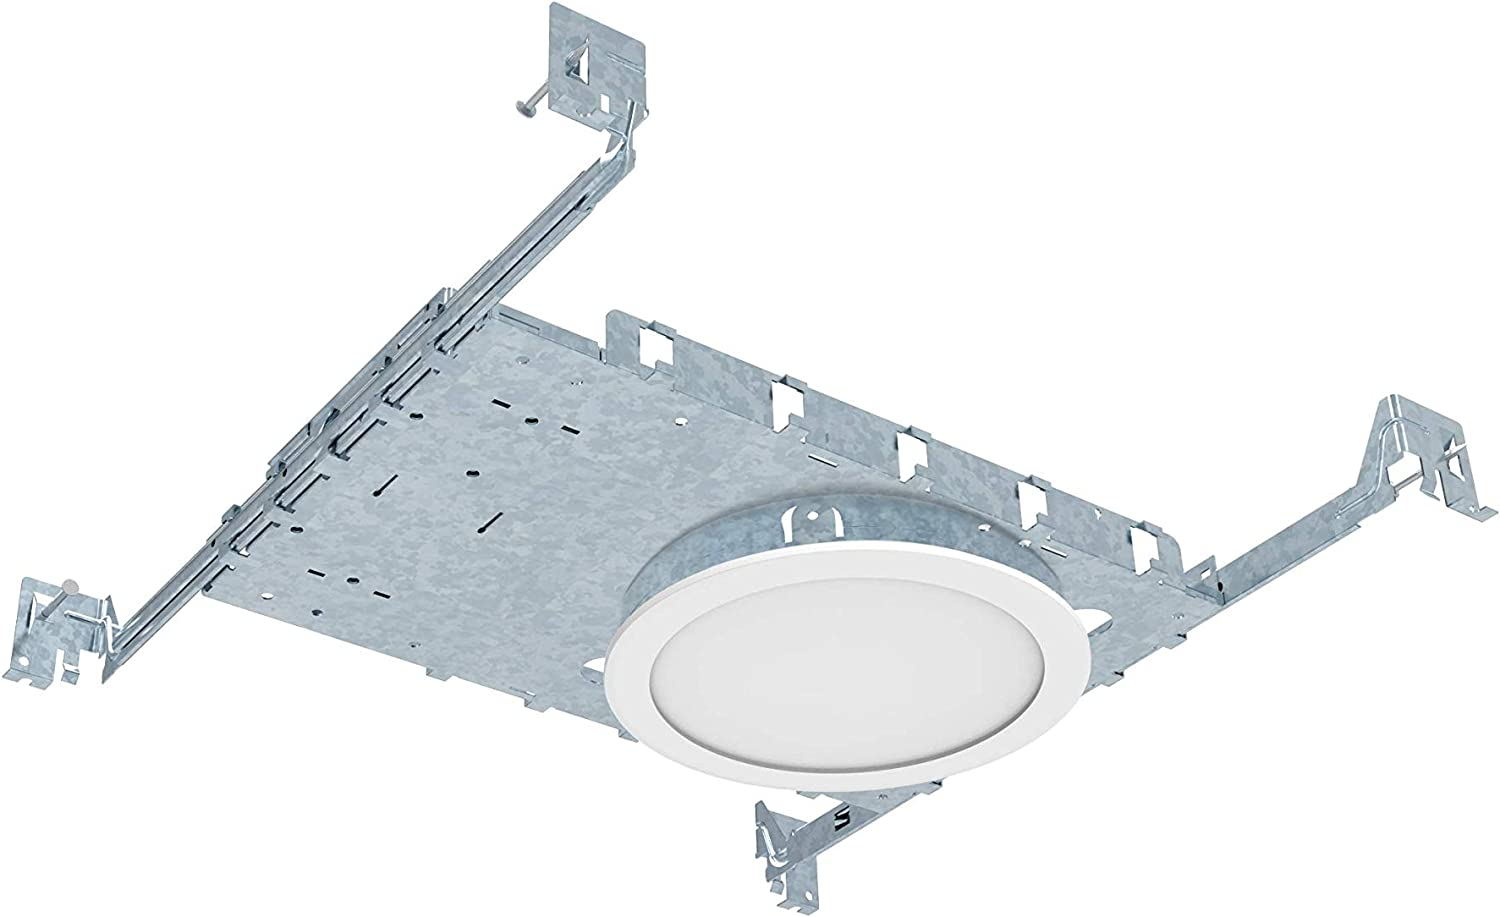 Hanger Bars and Re New Construction Recessed Lighting 4 inch 6W LED Dimmable Full kit 8 pack pot lights includes 8 electrical boxes and 1 Single Pole dimmer switch and 1 wall plate no Housing required Certified and IC rated Kit includes Mounting Plate